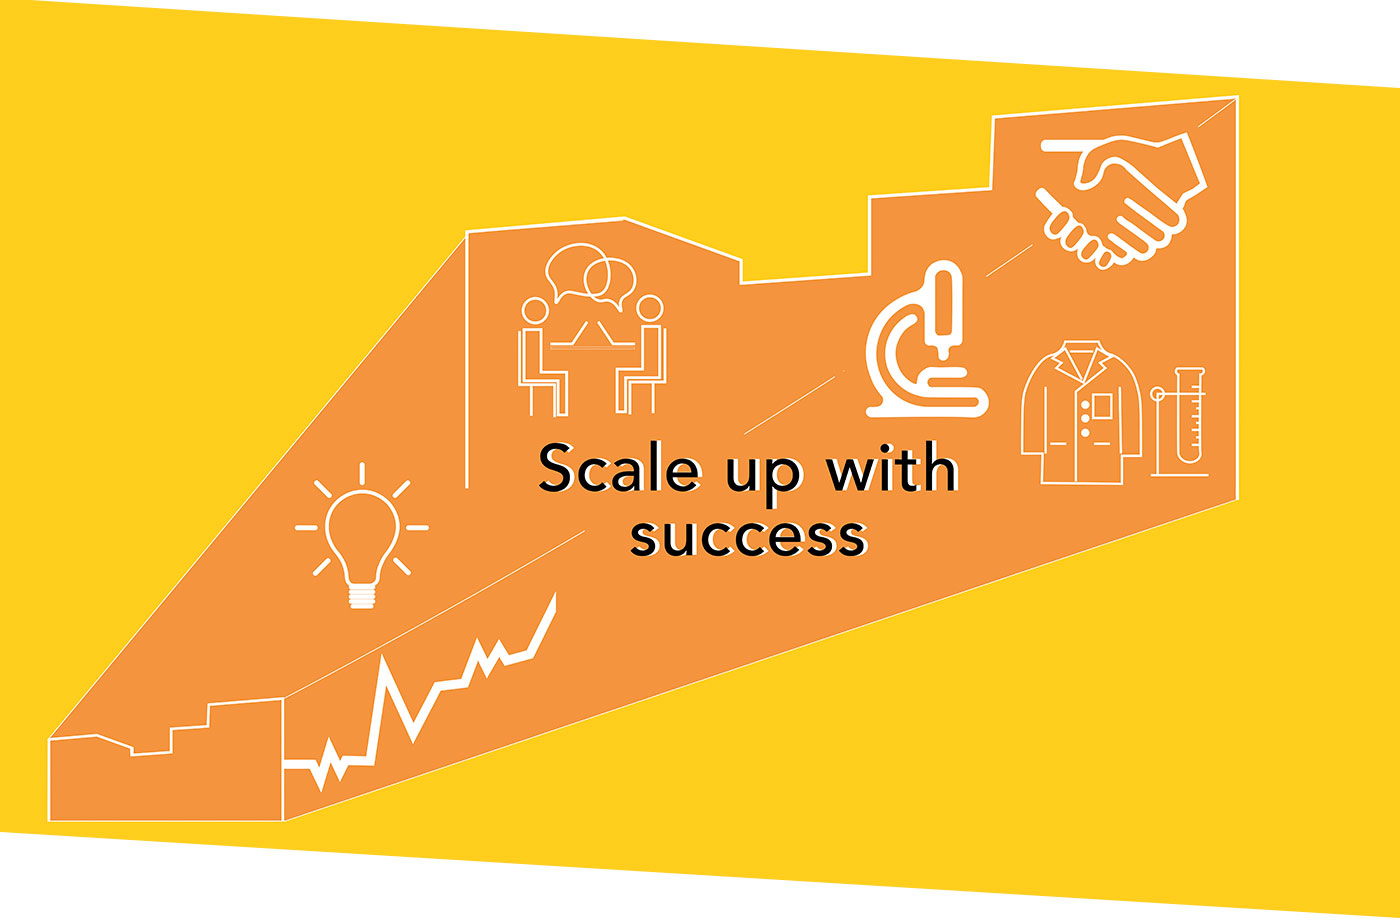 Scale Up with success